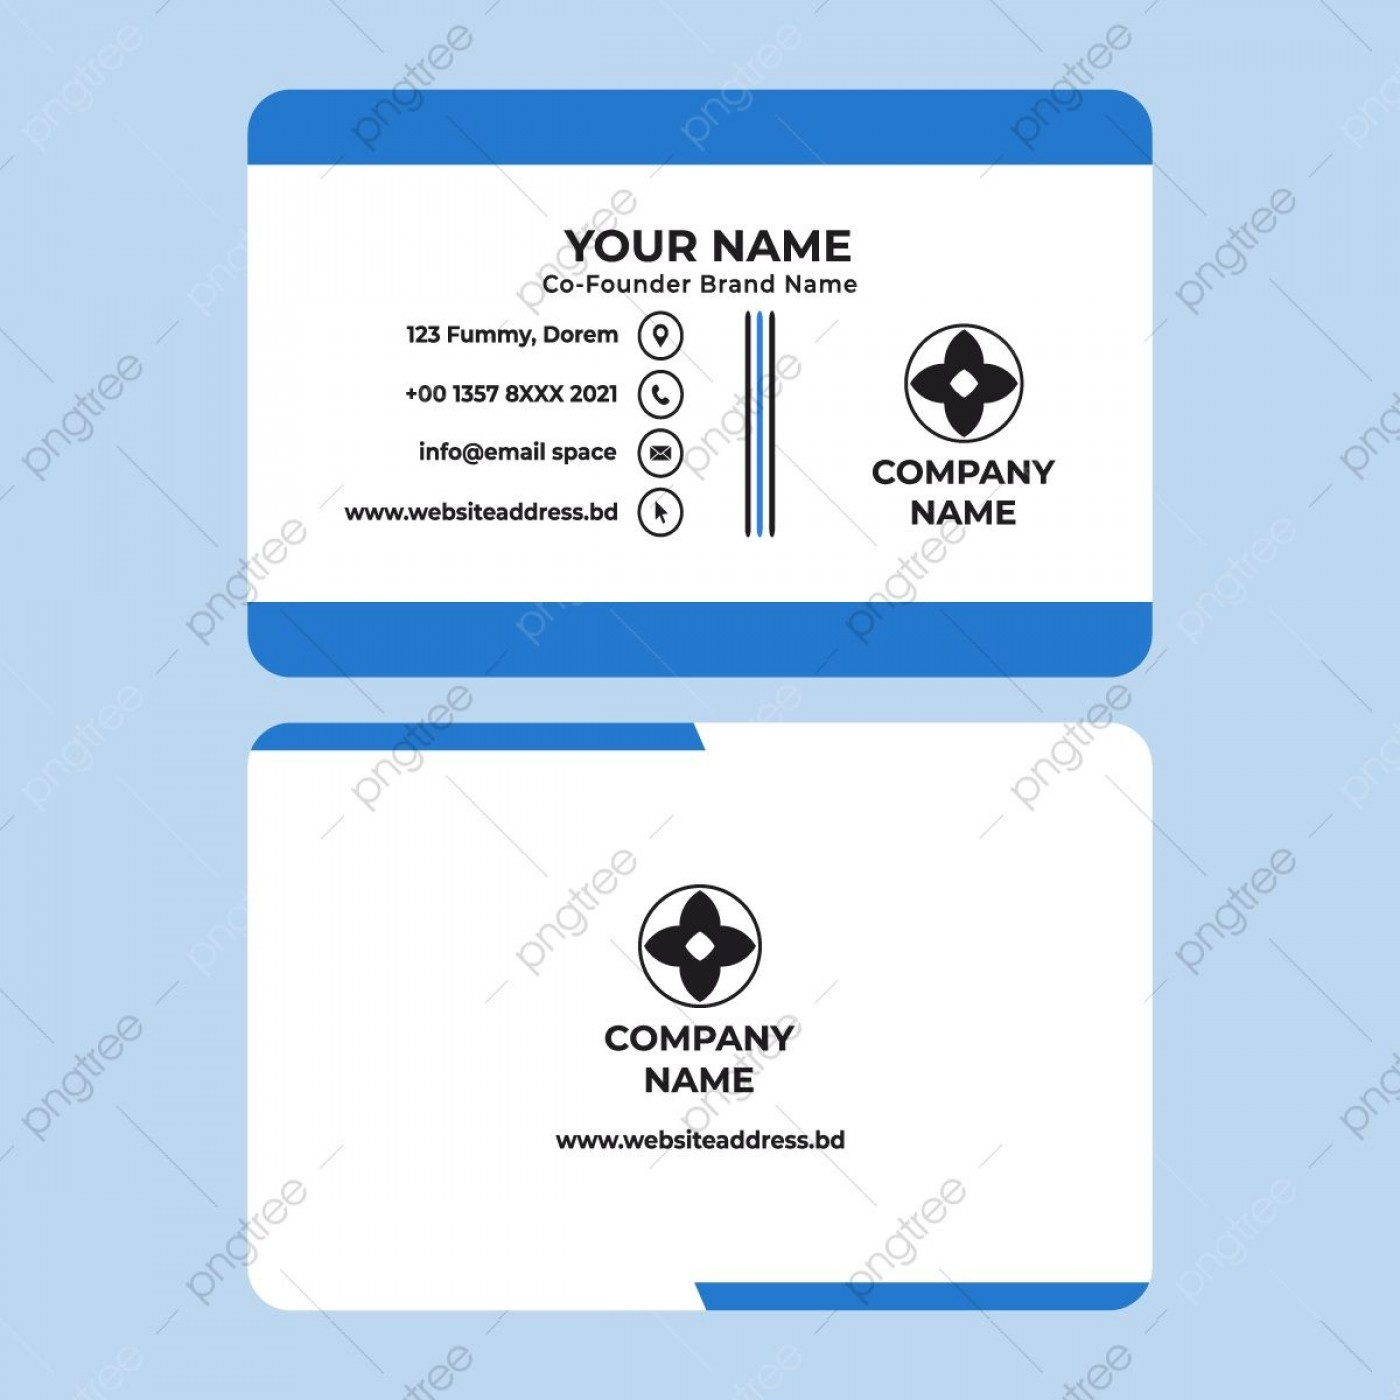 007 Sensational Simple Visiting Card Design Photo  Calling Busines Template Free In Photoshop1400